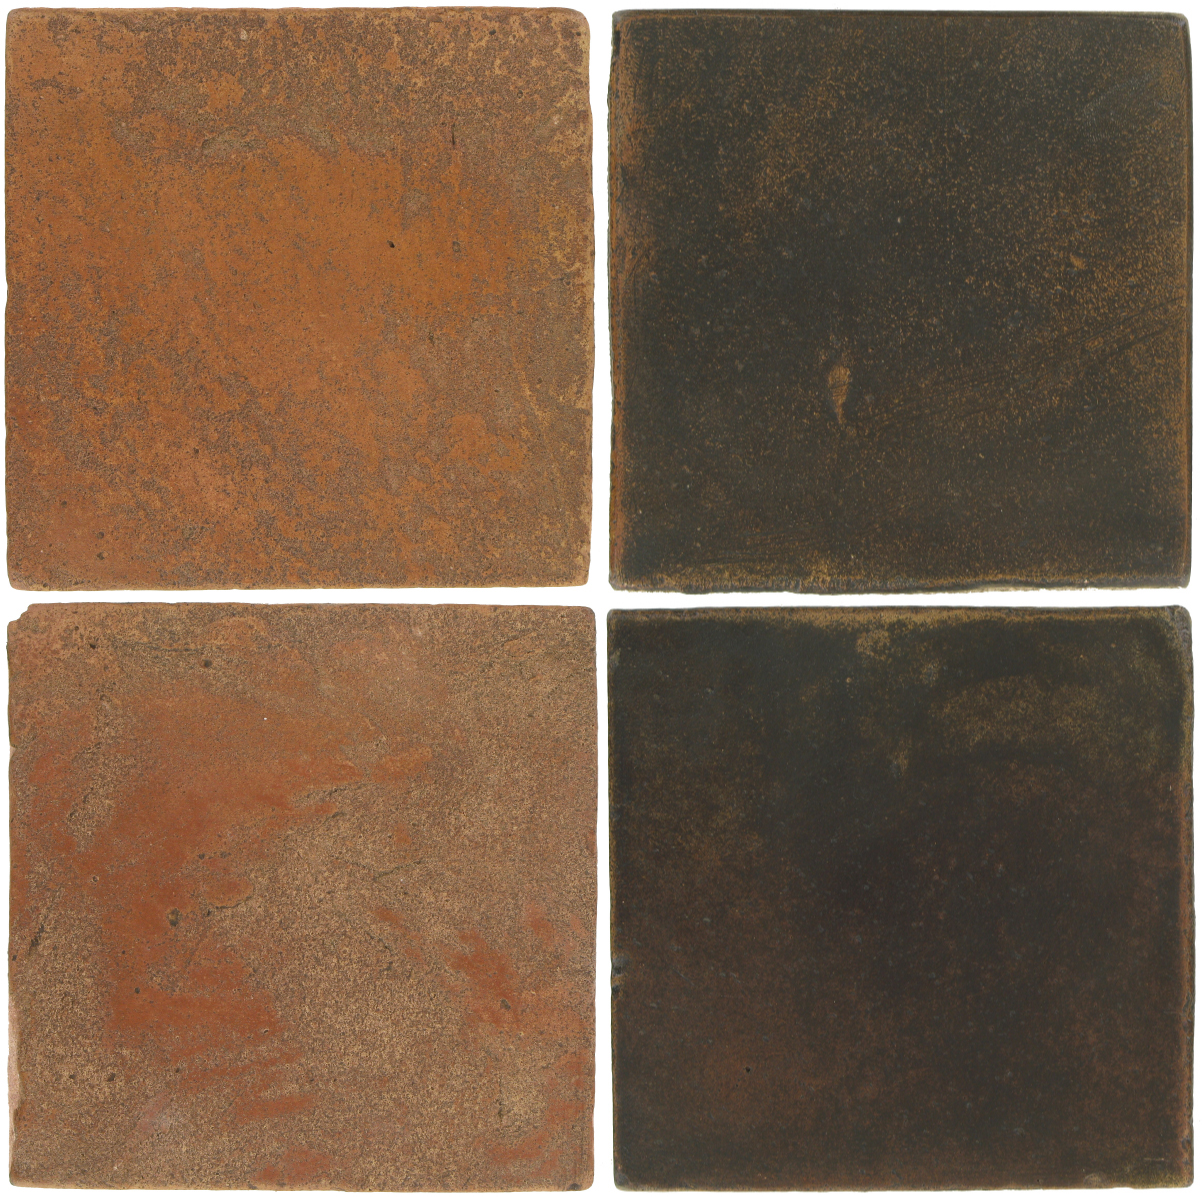 Pedralbes Antique Terracotta  2 Color Combinations  VTG-PSTR Traditional + OHS-PSCO Cologne Brown